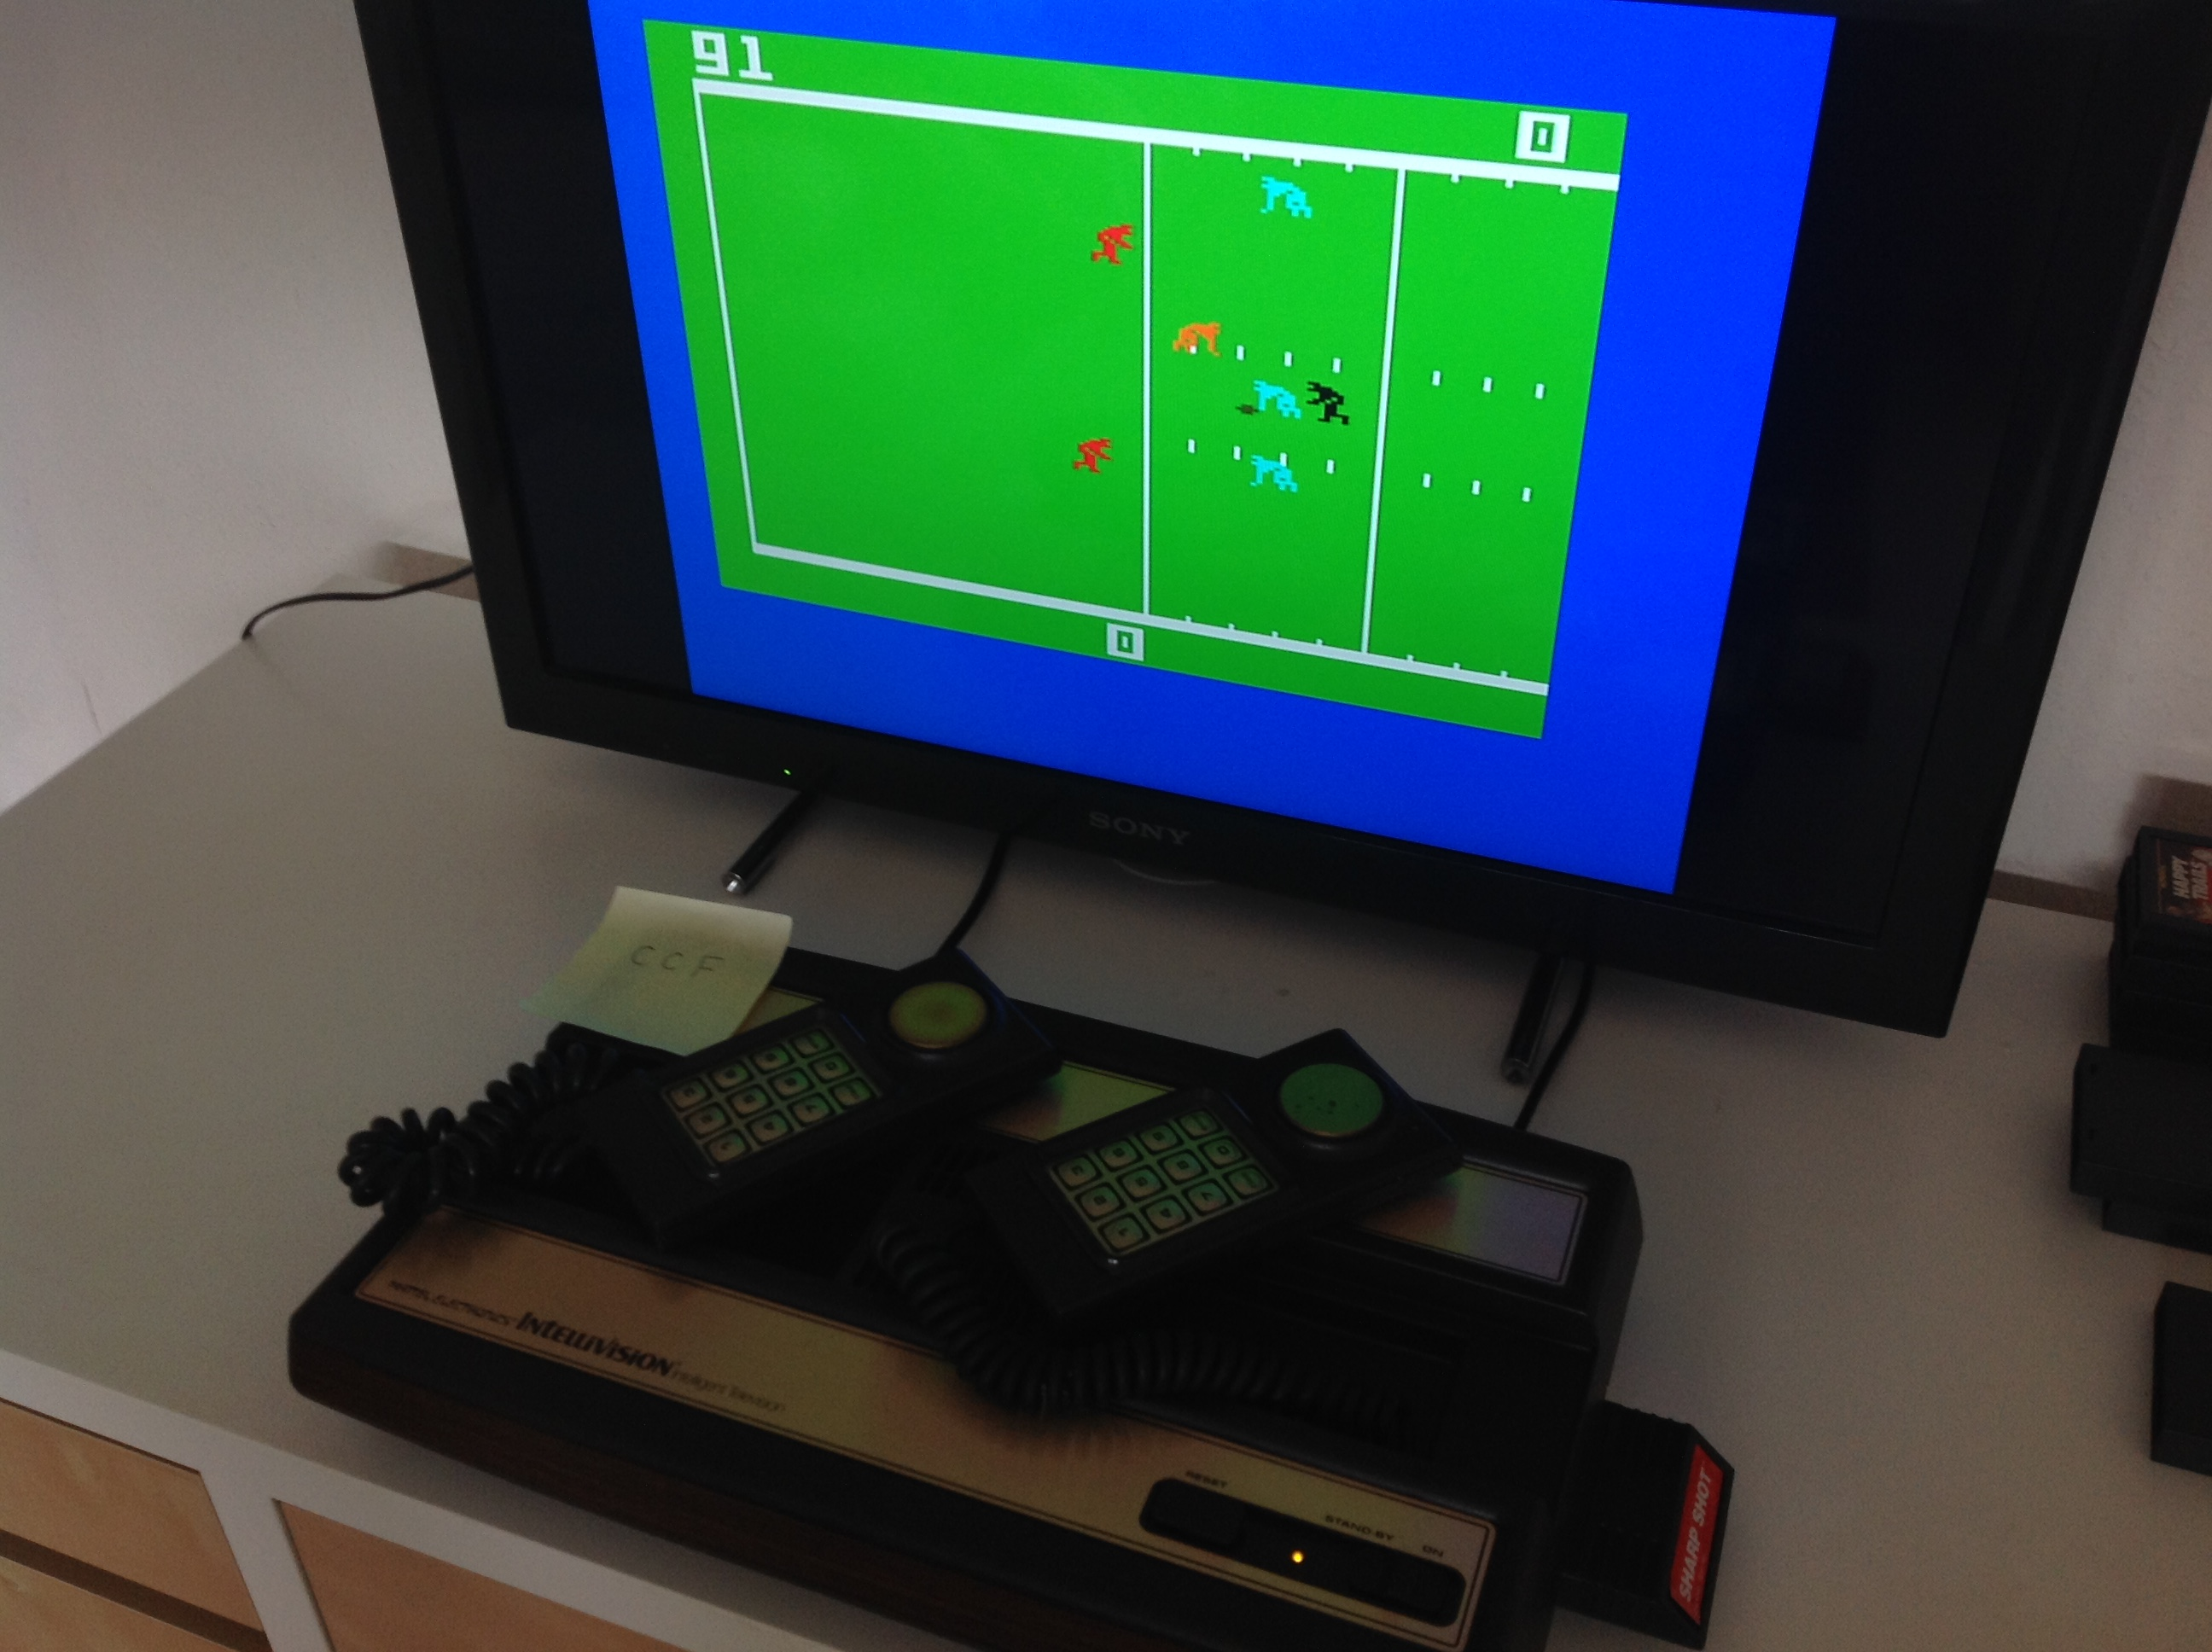 CoCoForest: Sharp Shot: Football (Intellivision) 91 points on 2018-08-20 10:59:23